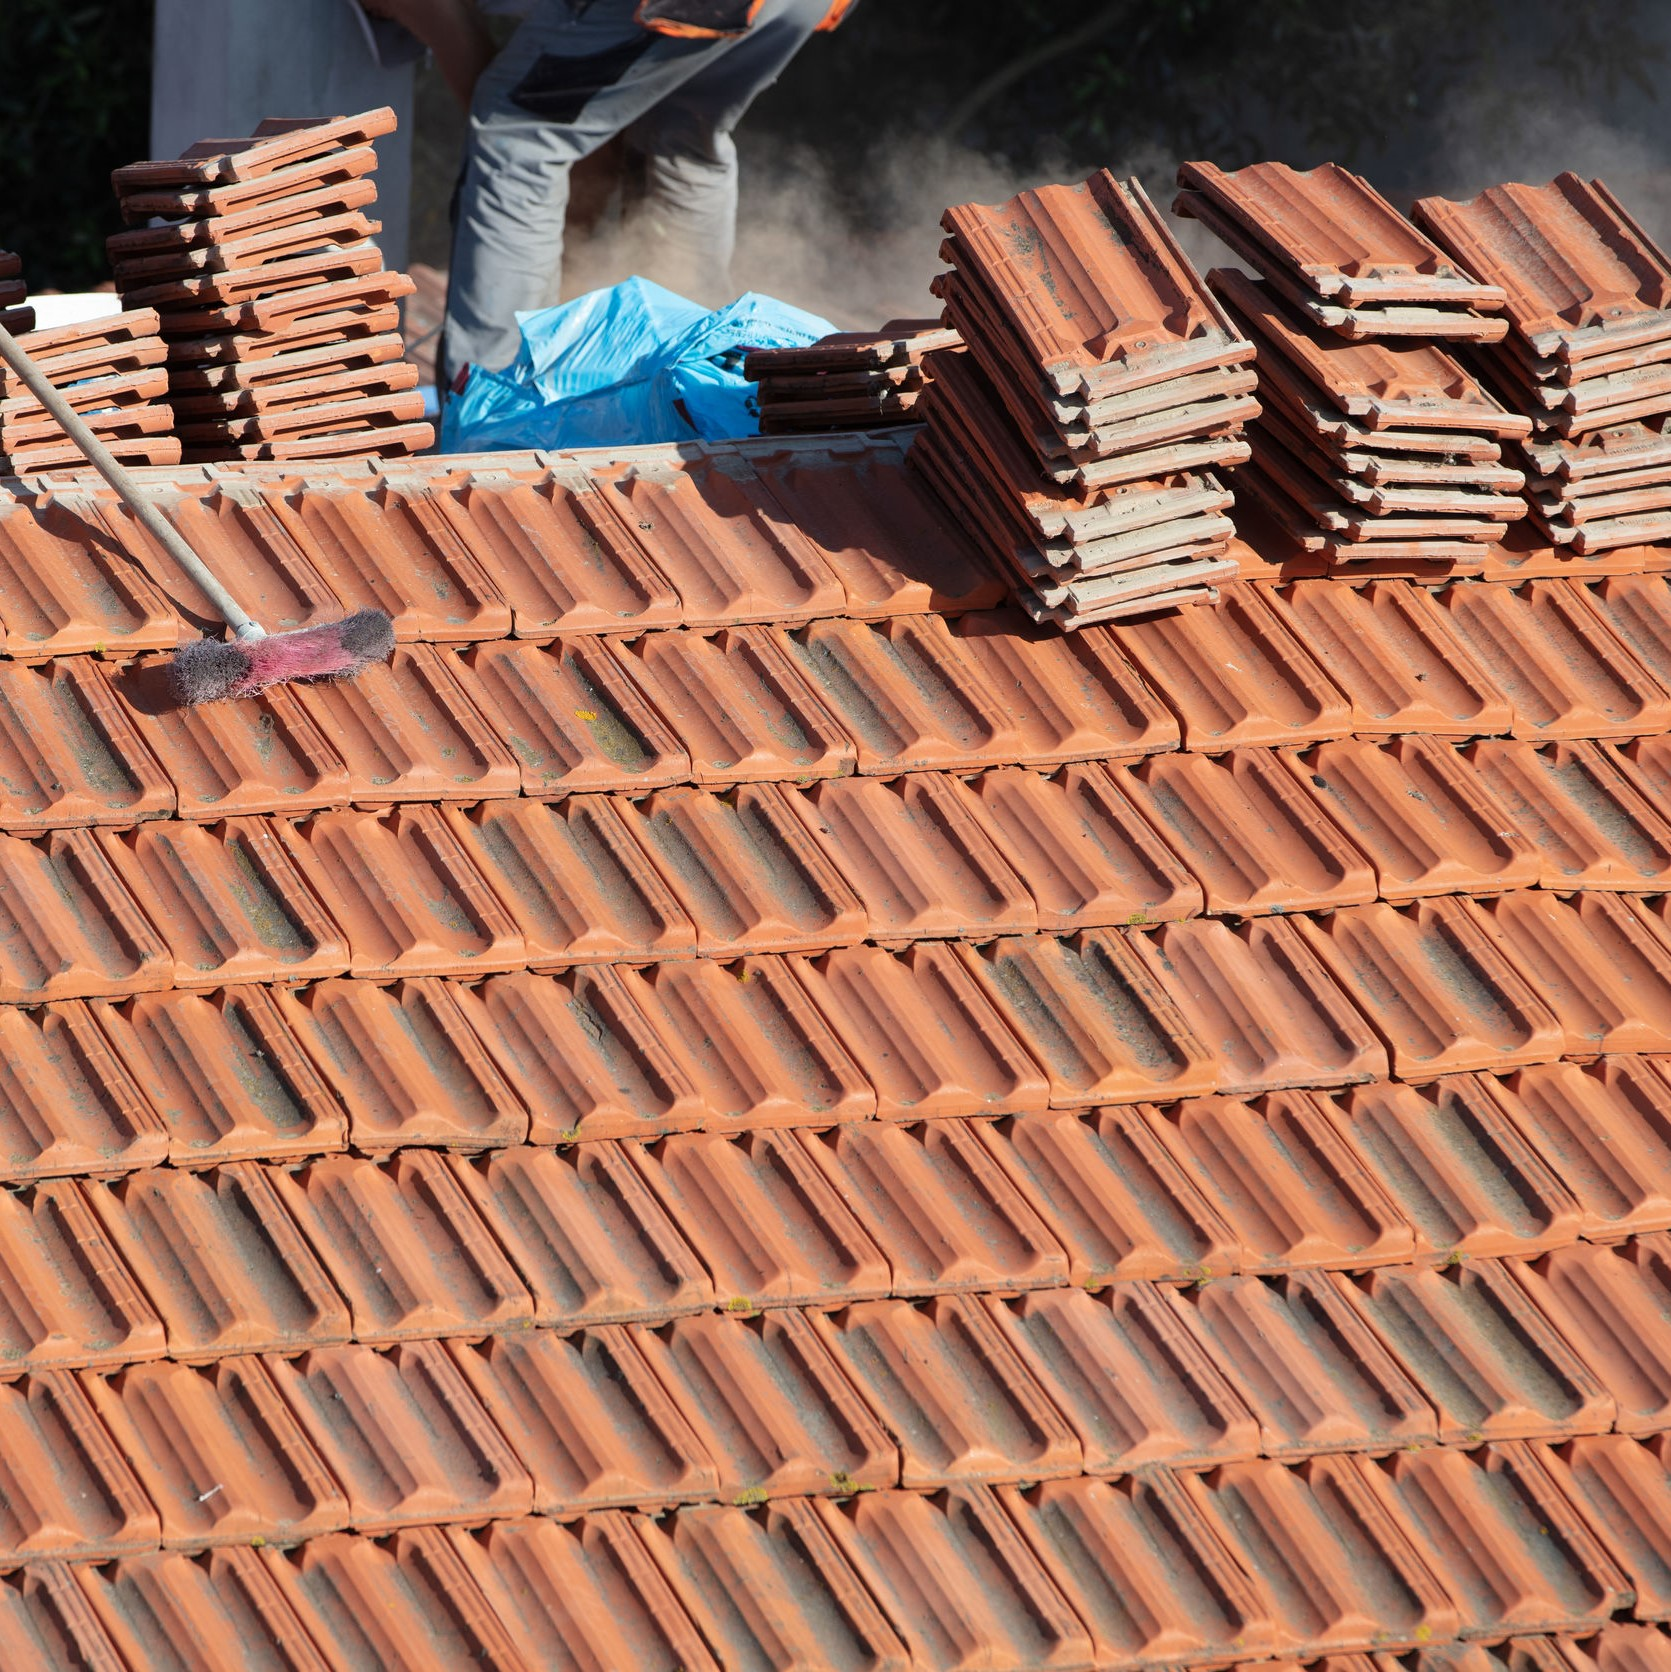 A tile roof being installed.